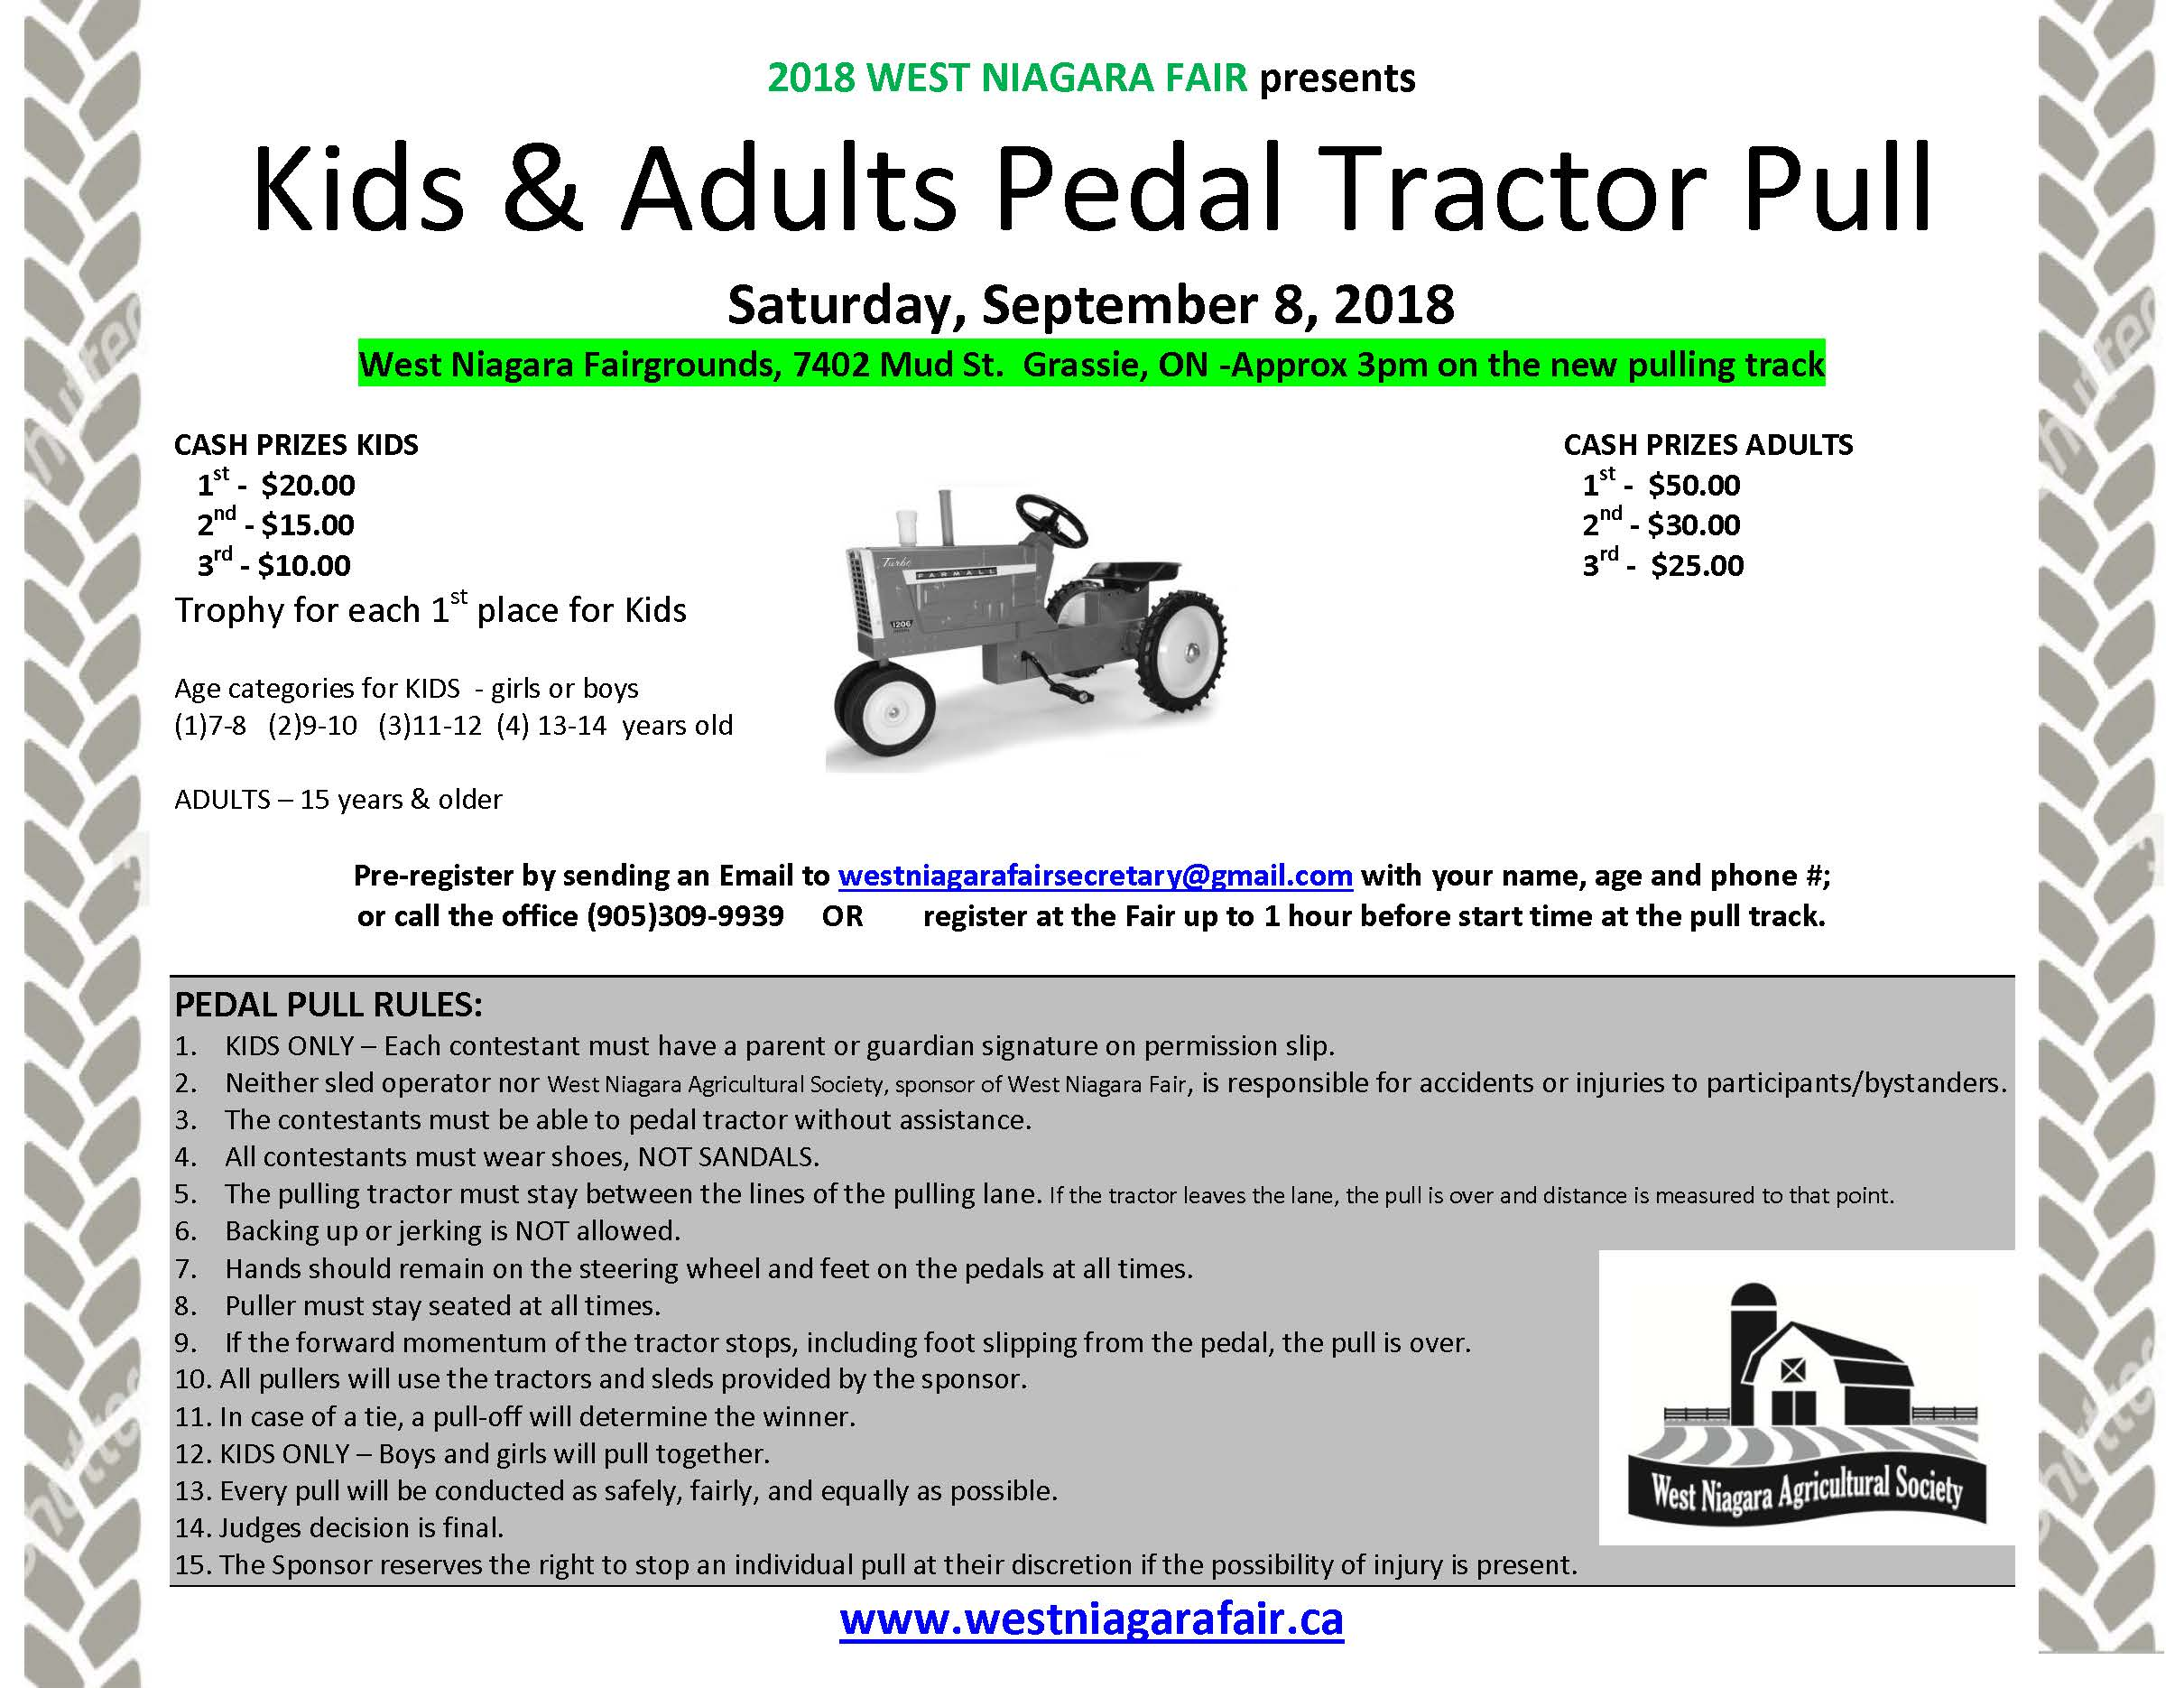 Pedal tractor pull poster